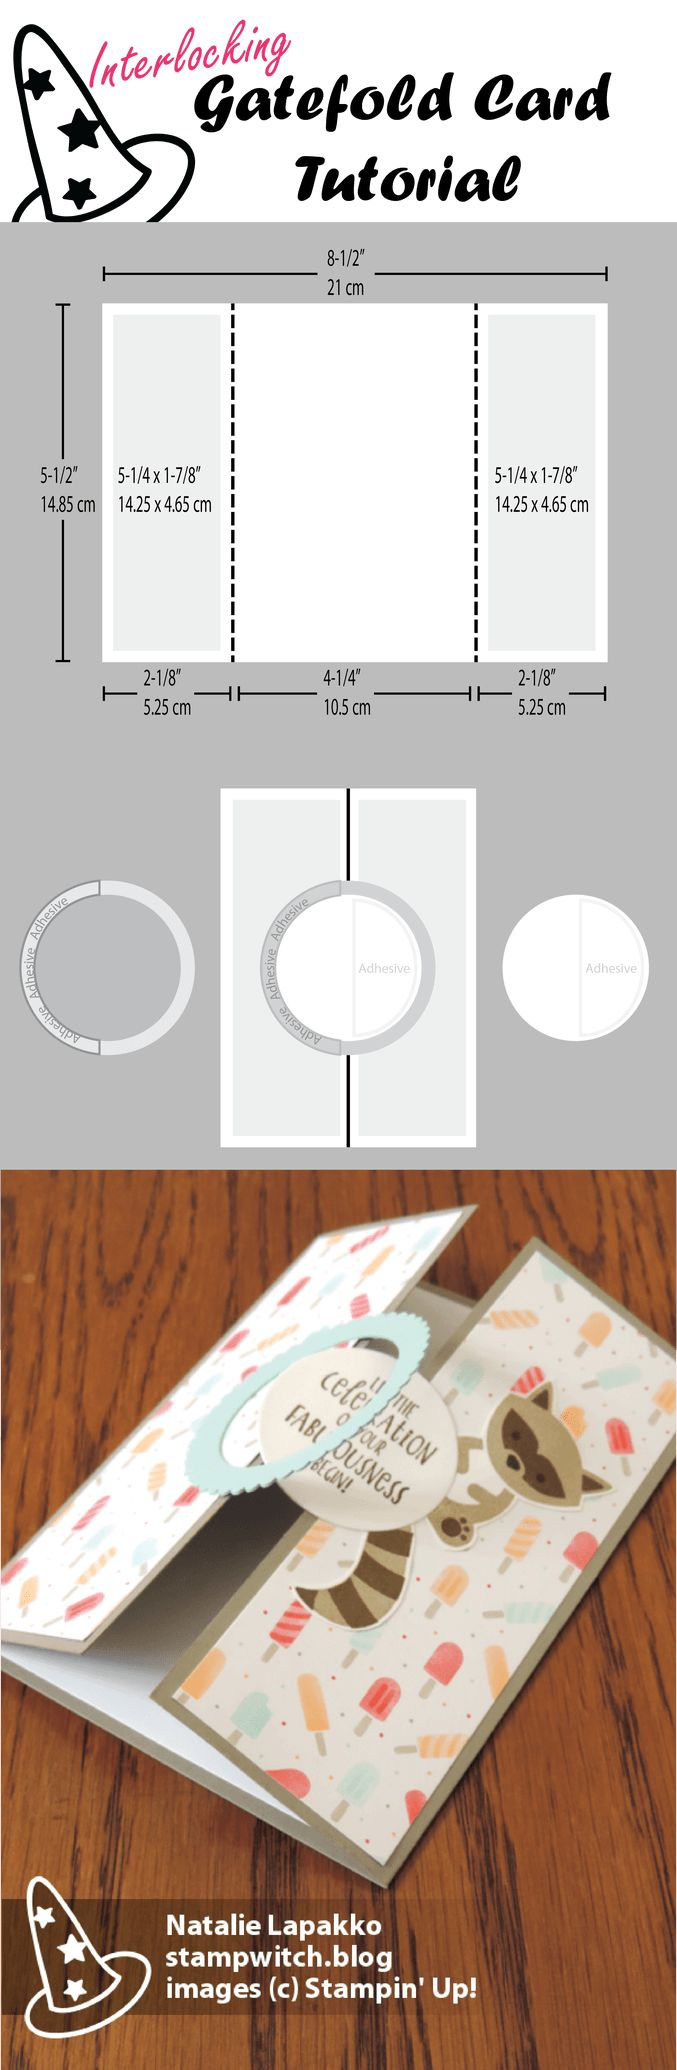 best card stamps images on pinterest handmade cards tutorials